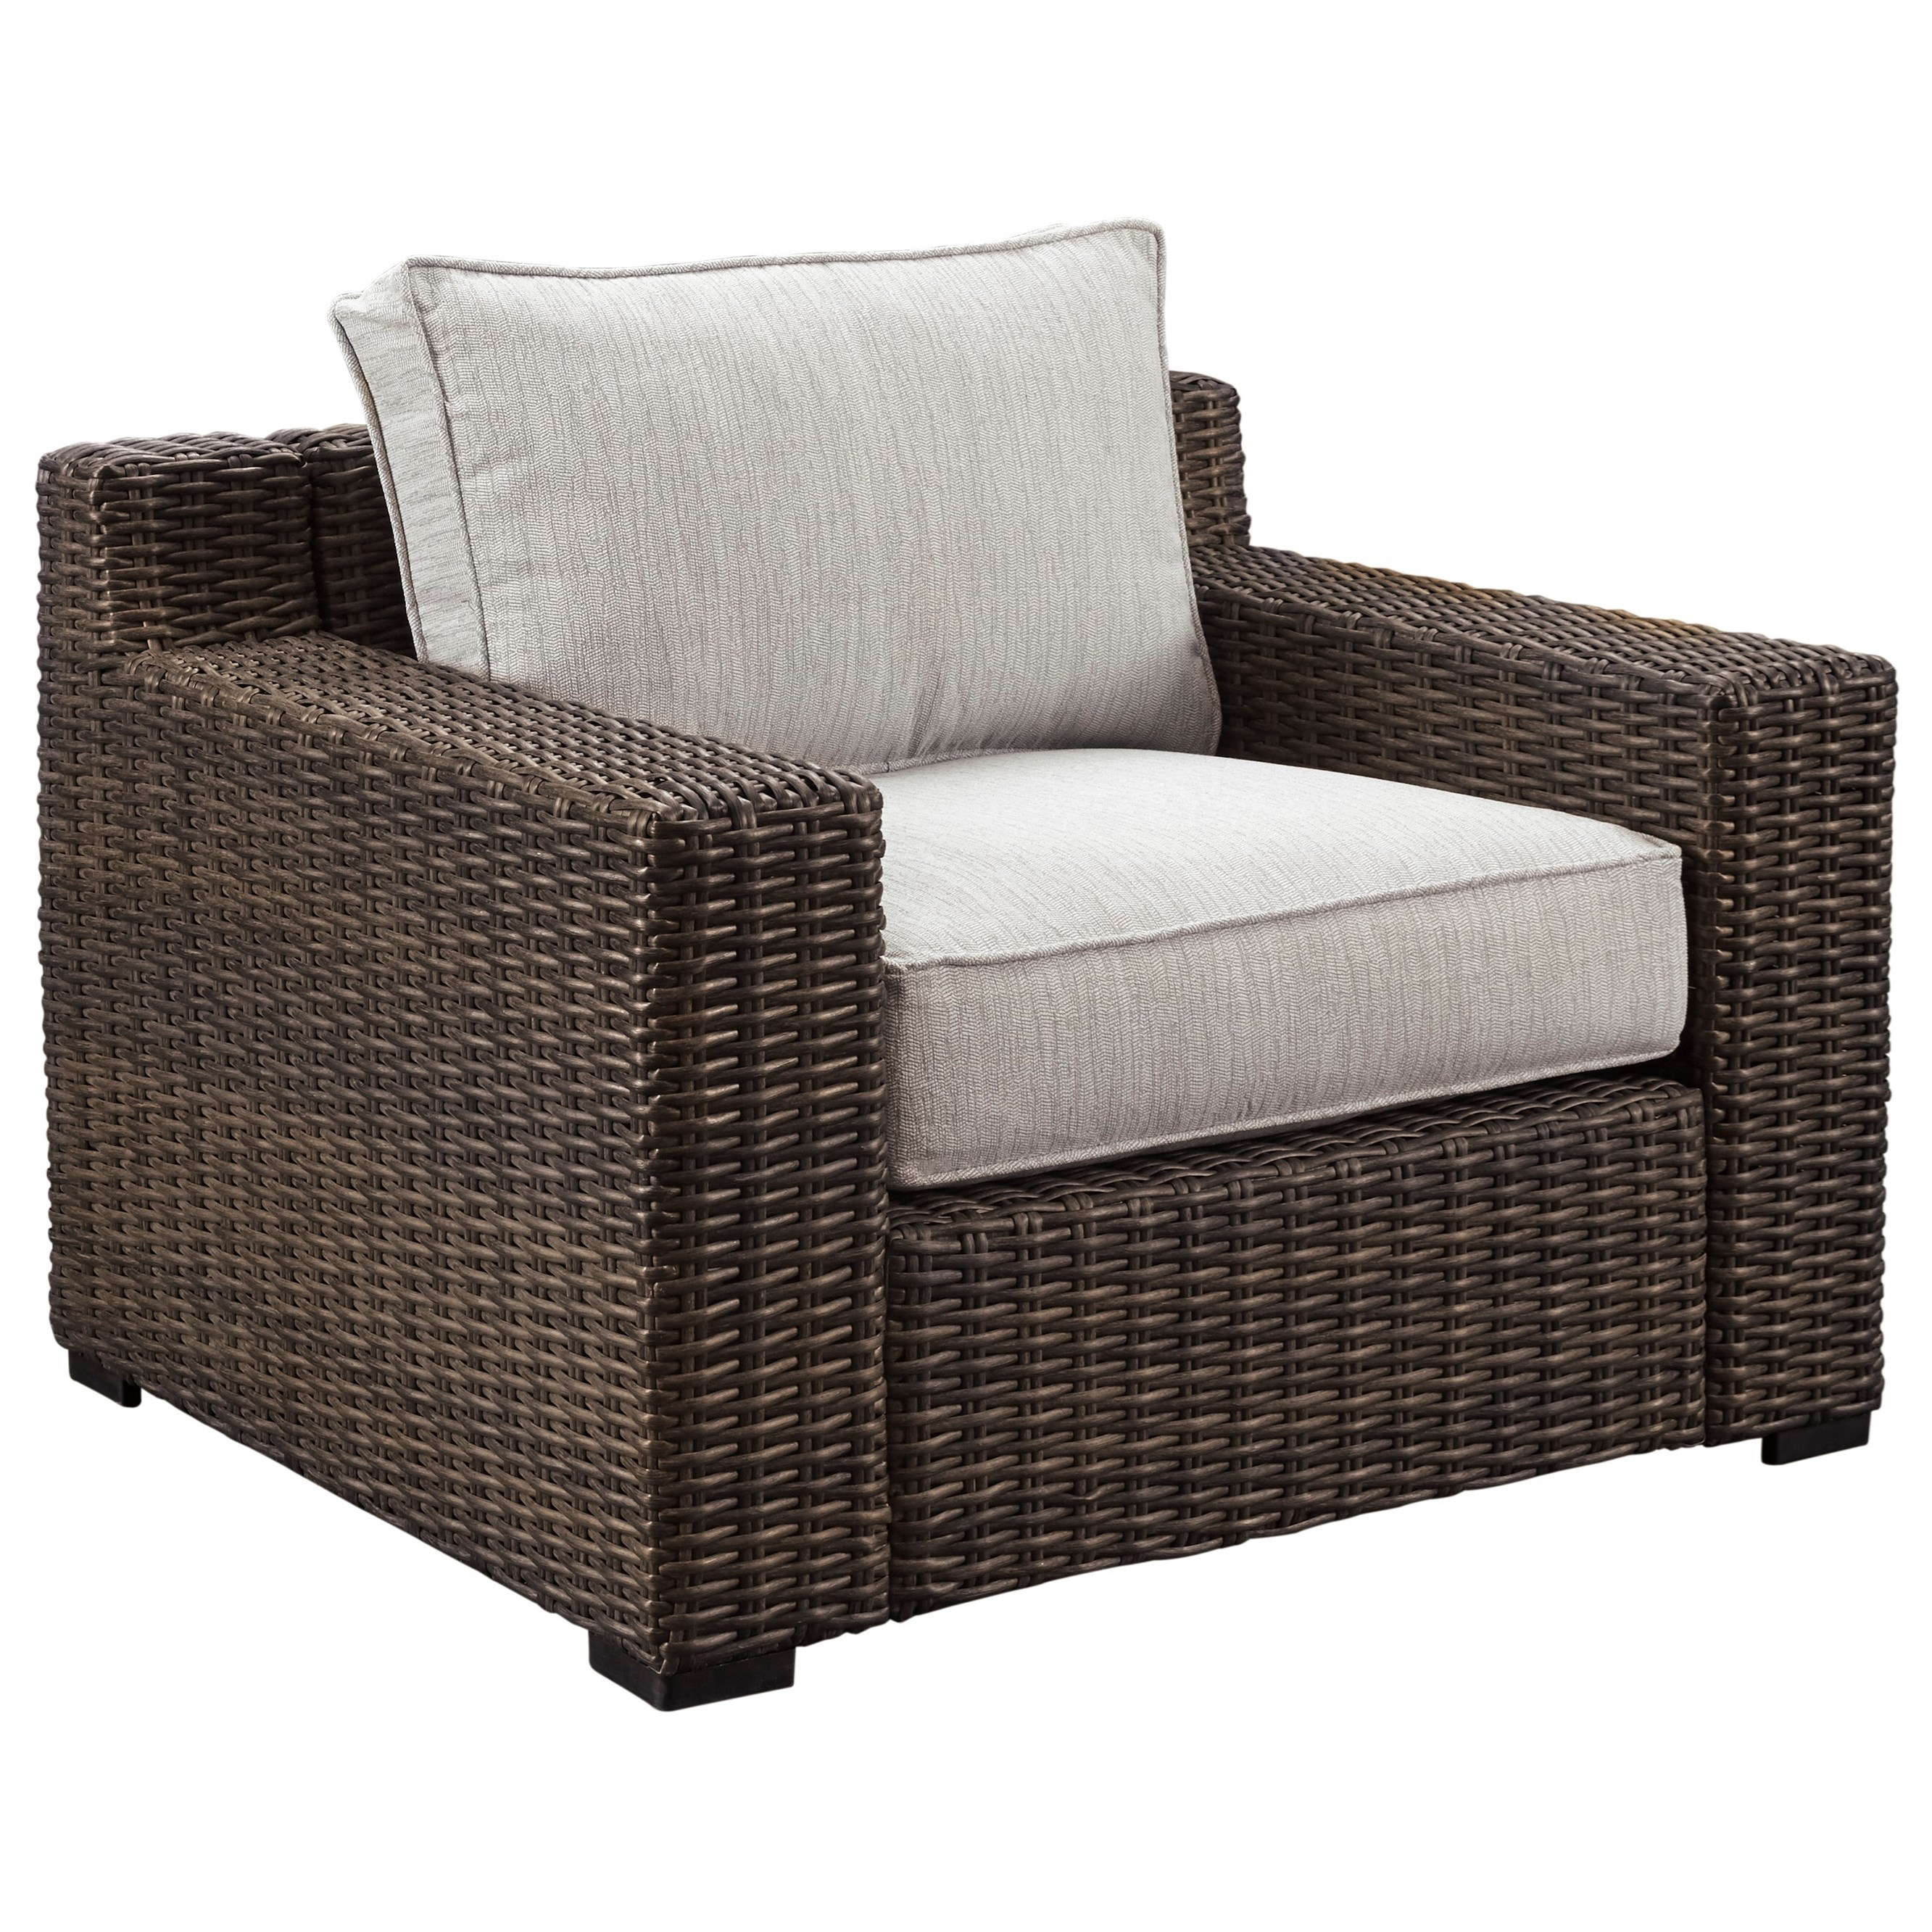 Charmant Signature Design By Ashley Alta Grande Lounge Chair With Cushion